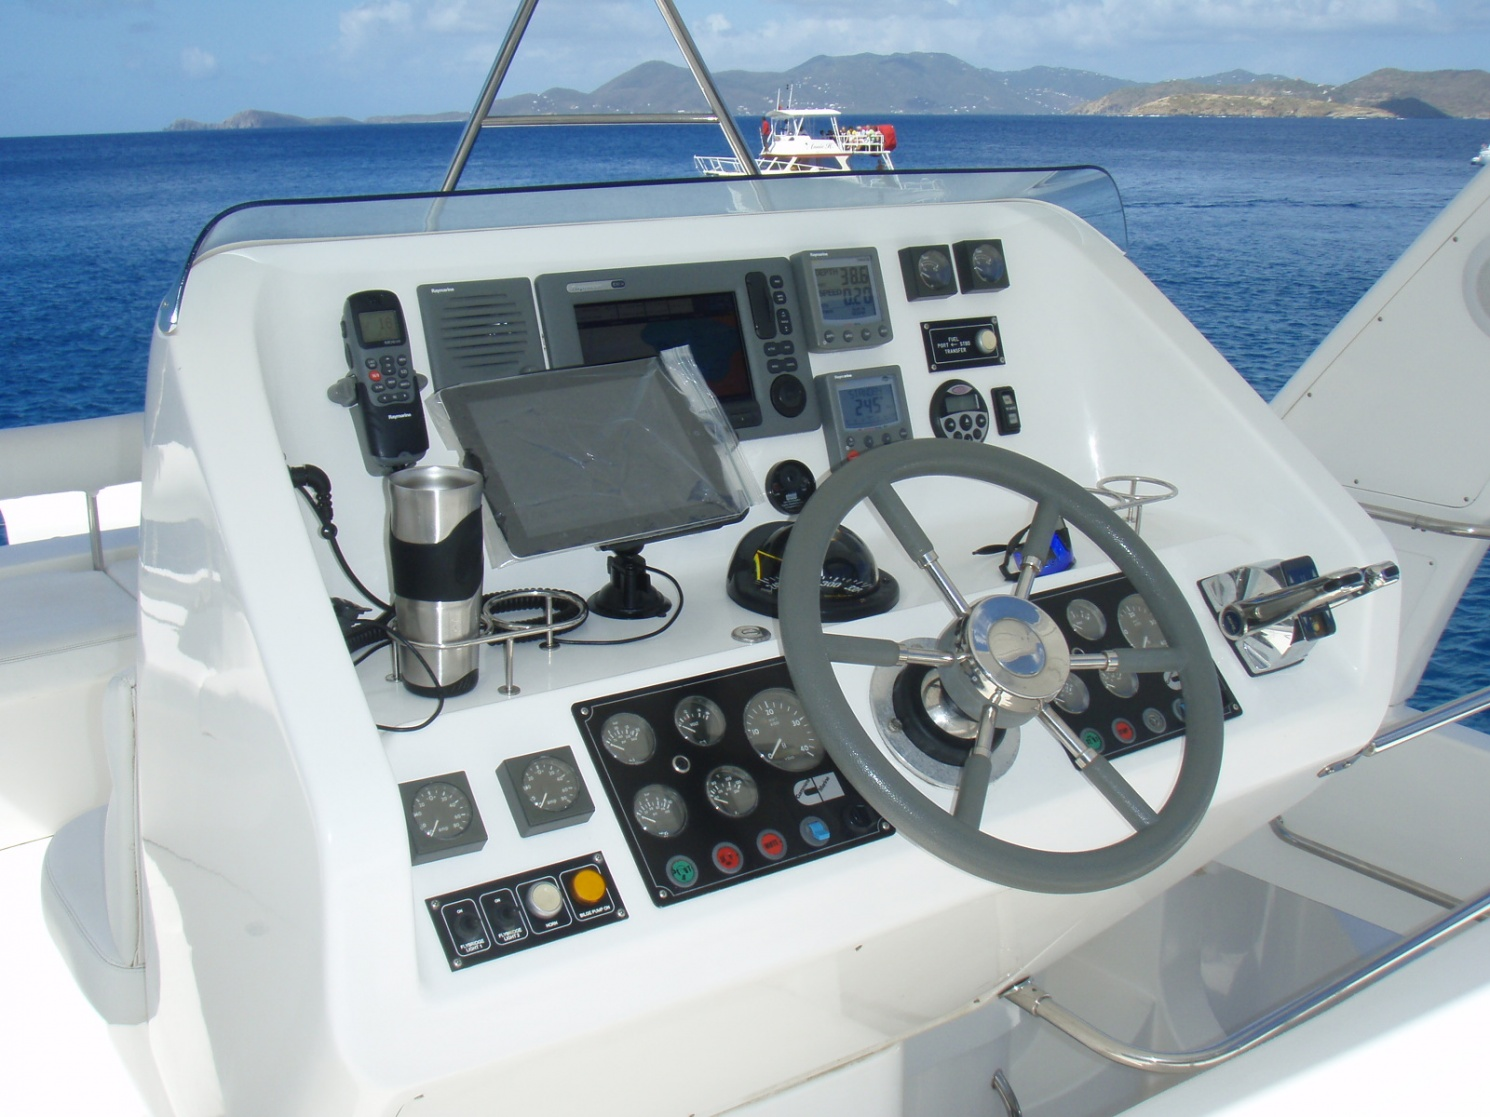 Click image for larger version  Name:iPad_at Helm.jpg Views:409 Size:400.9 KB ID:38471